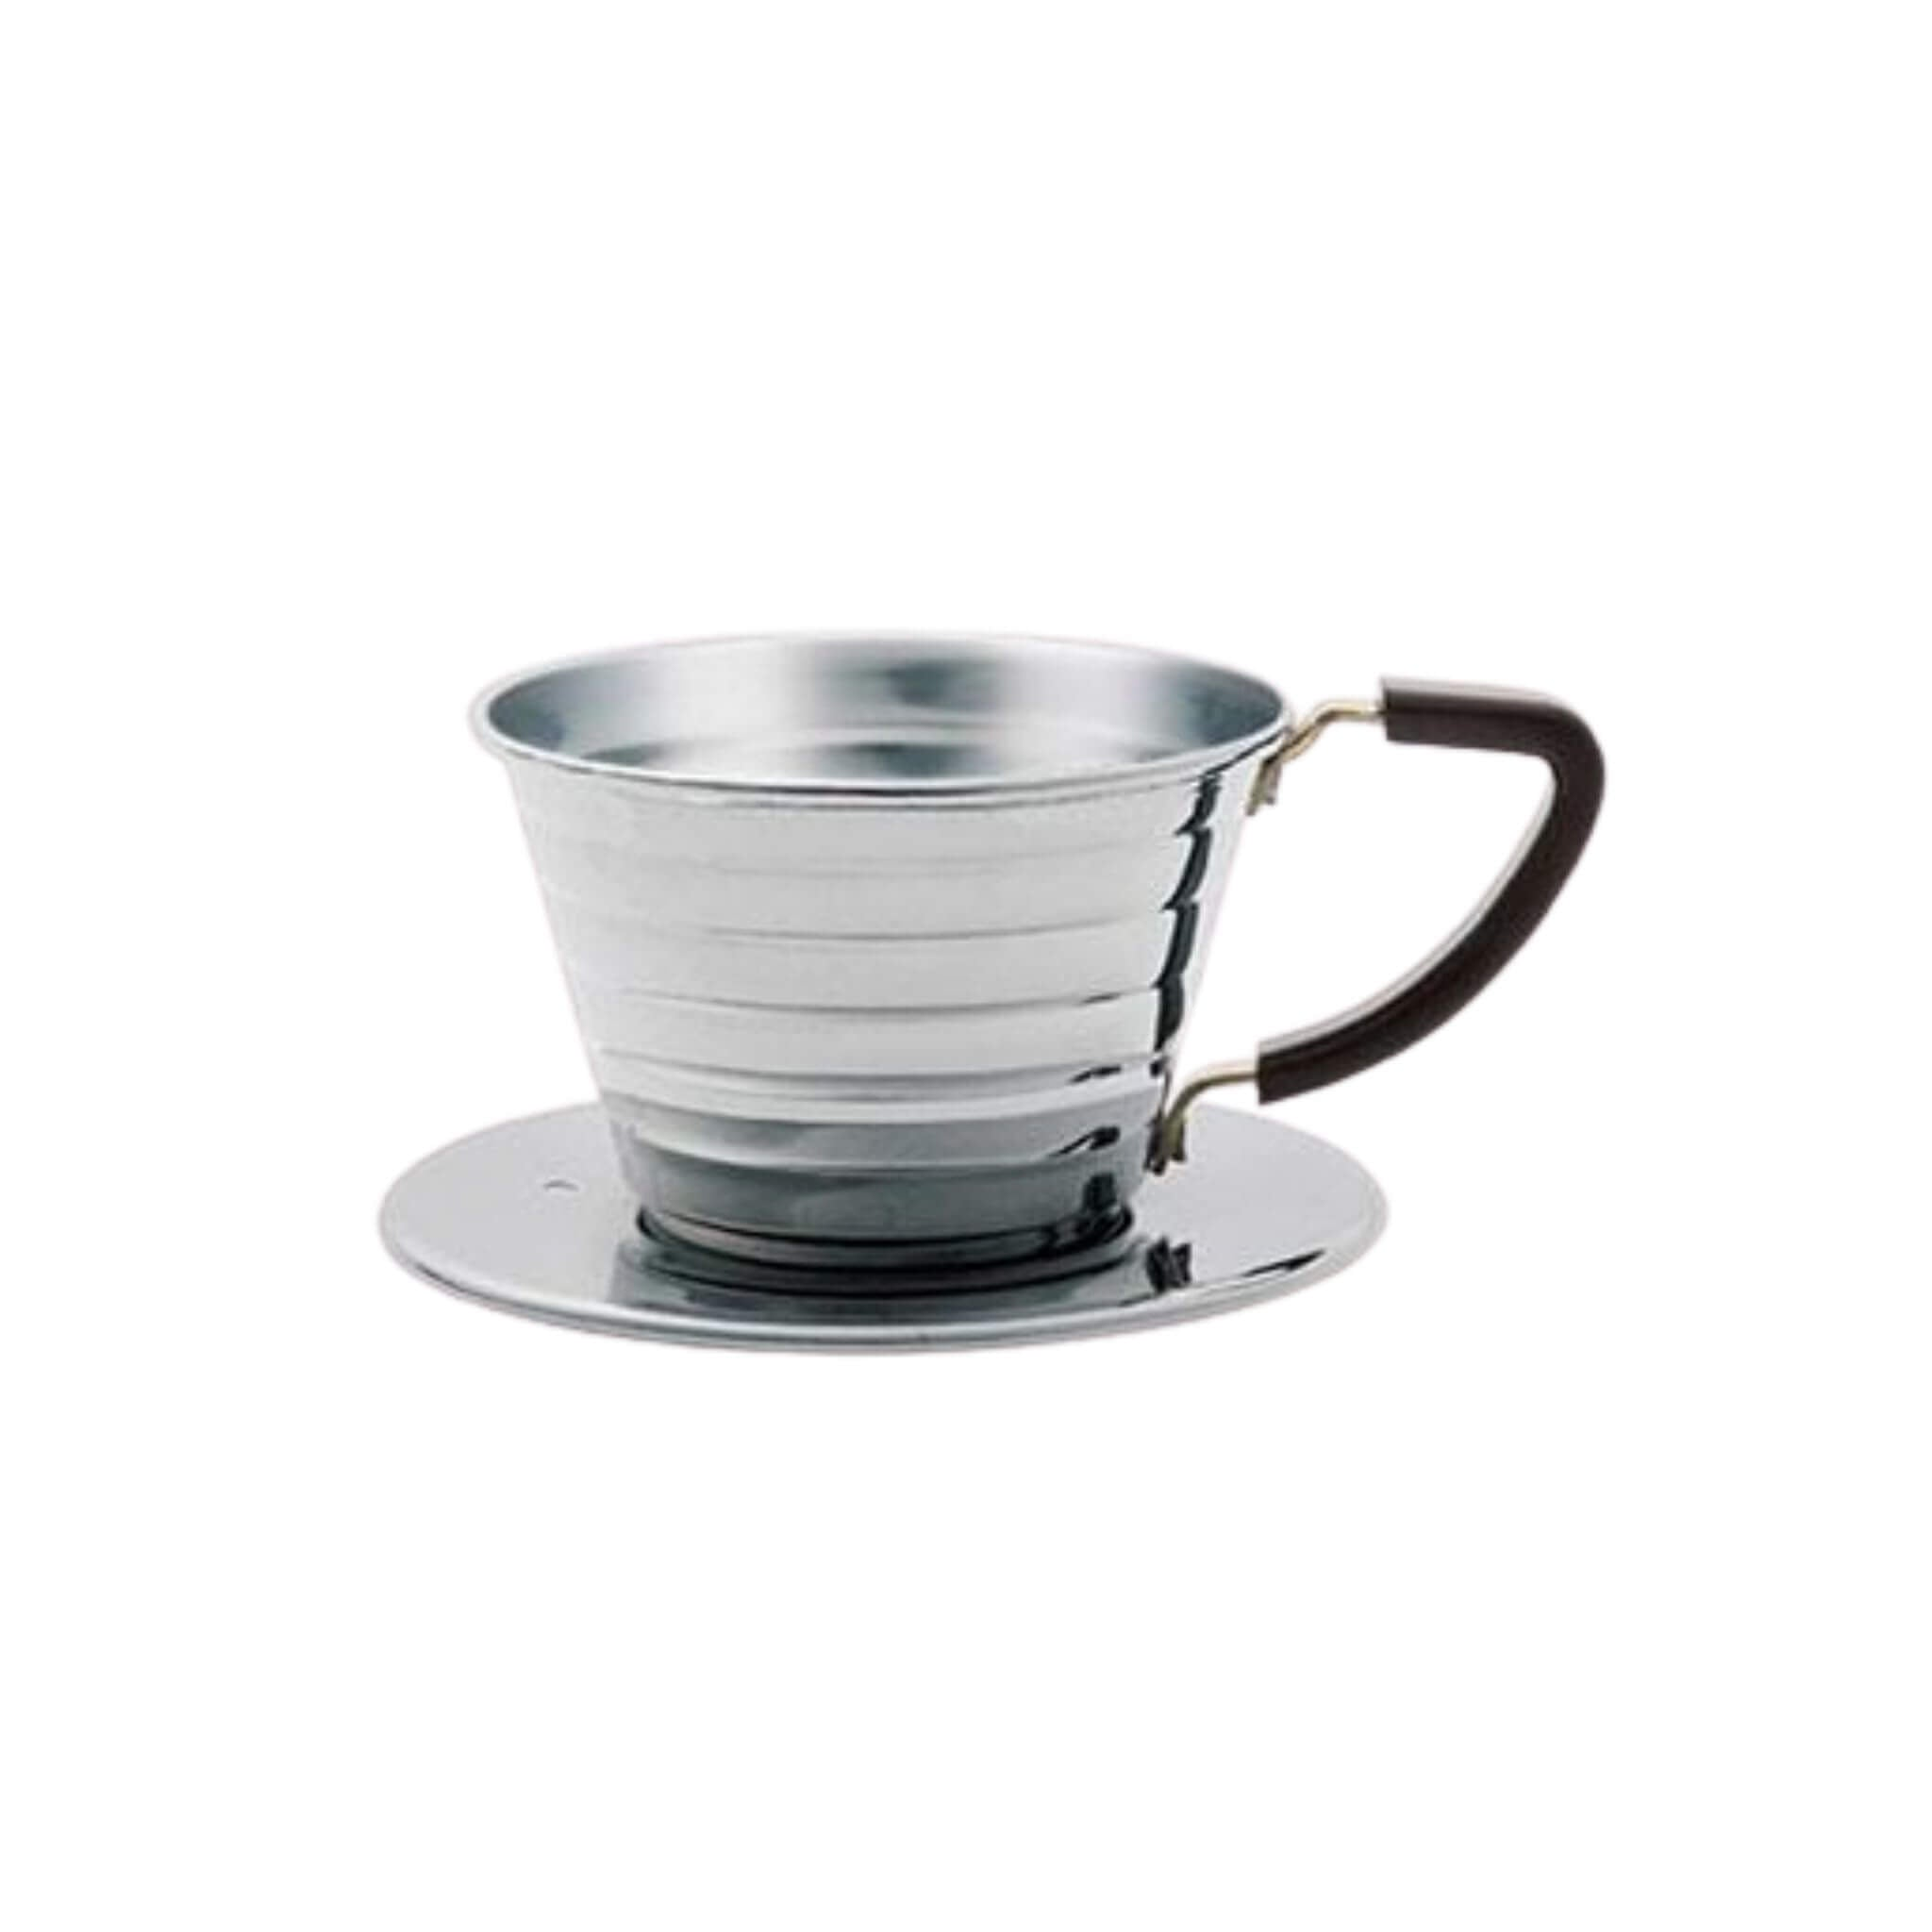 Kalita 185 Stainless Steel Pour Over Coffee Maker